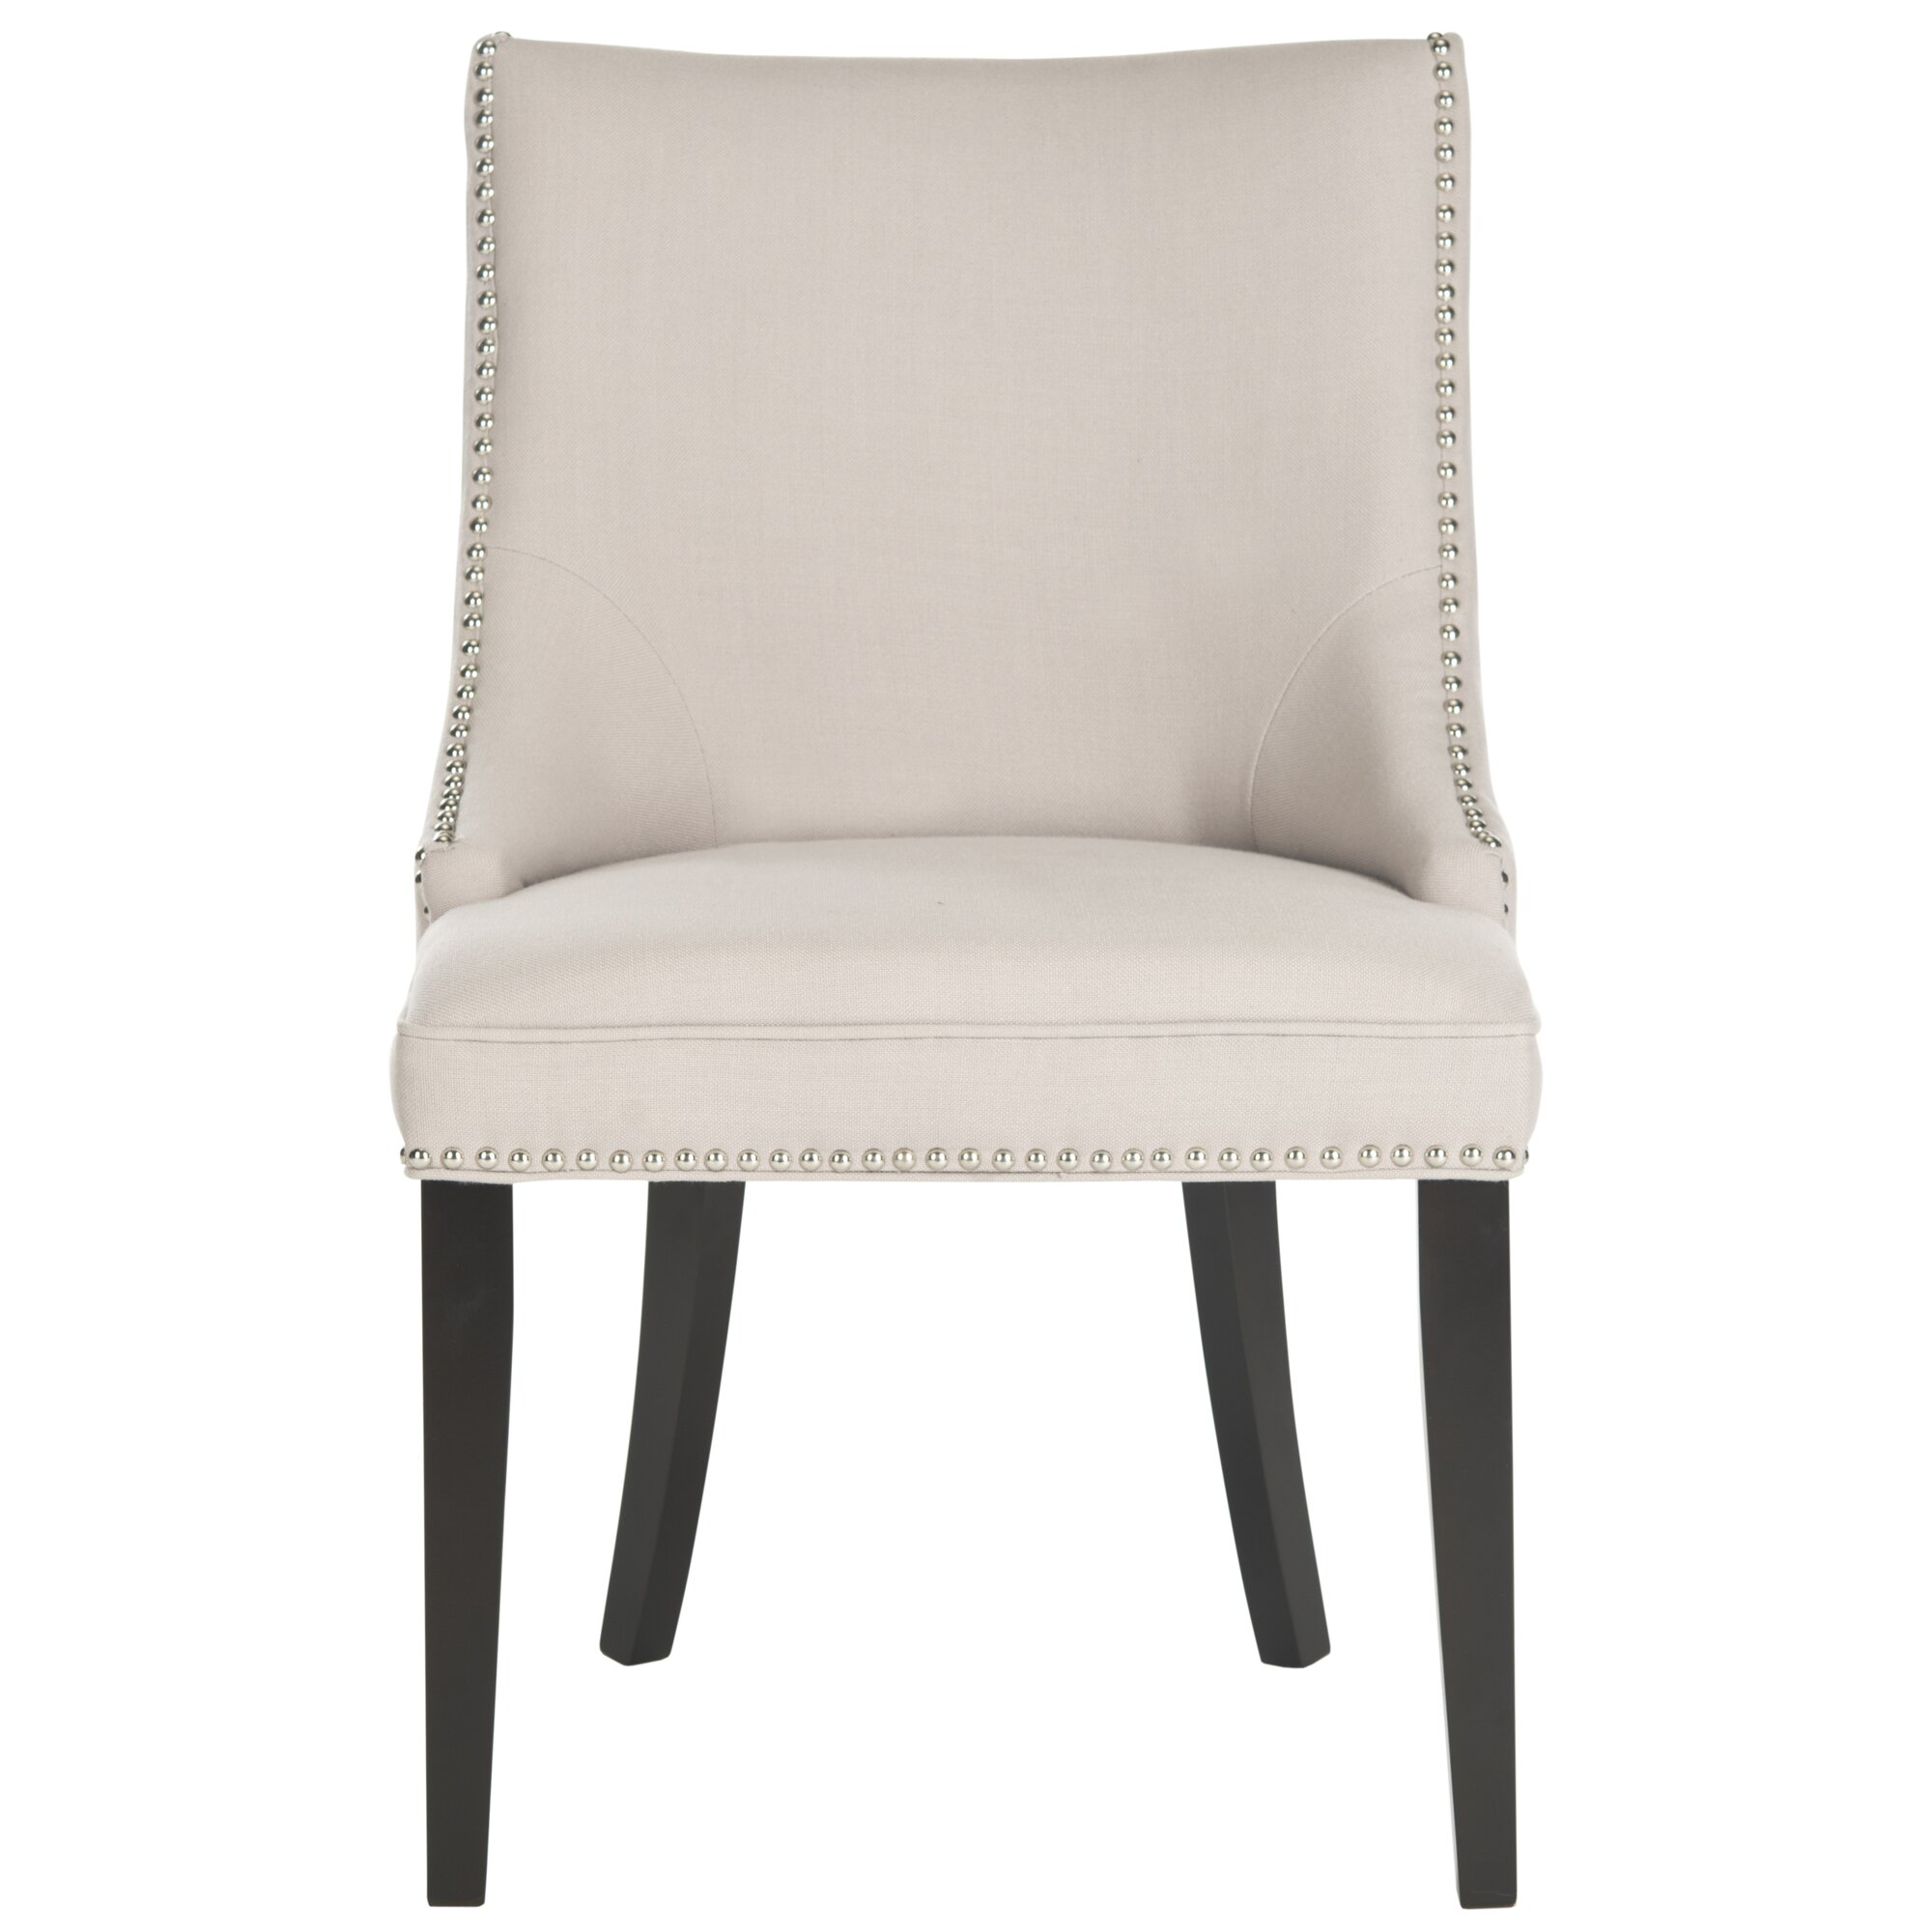 House Of Hampton Katherina Upholstered Dining Chair